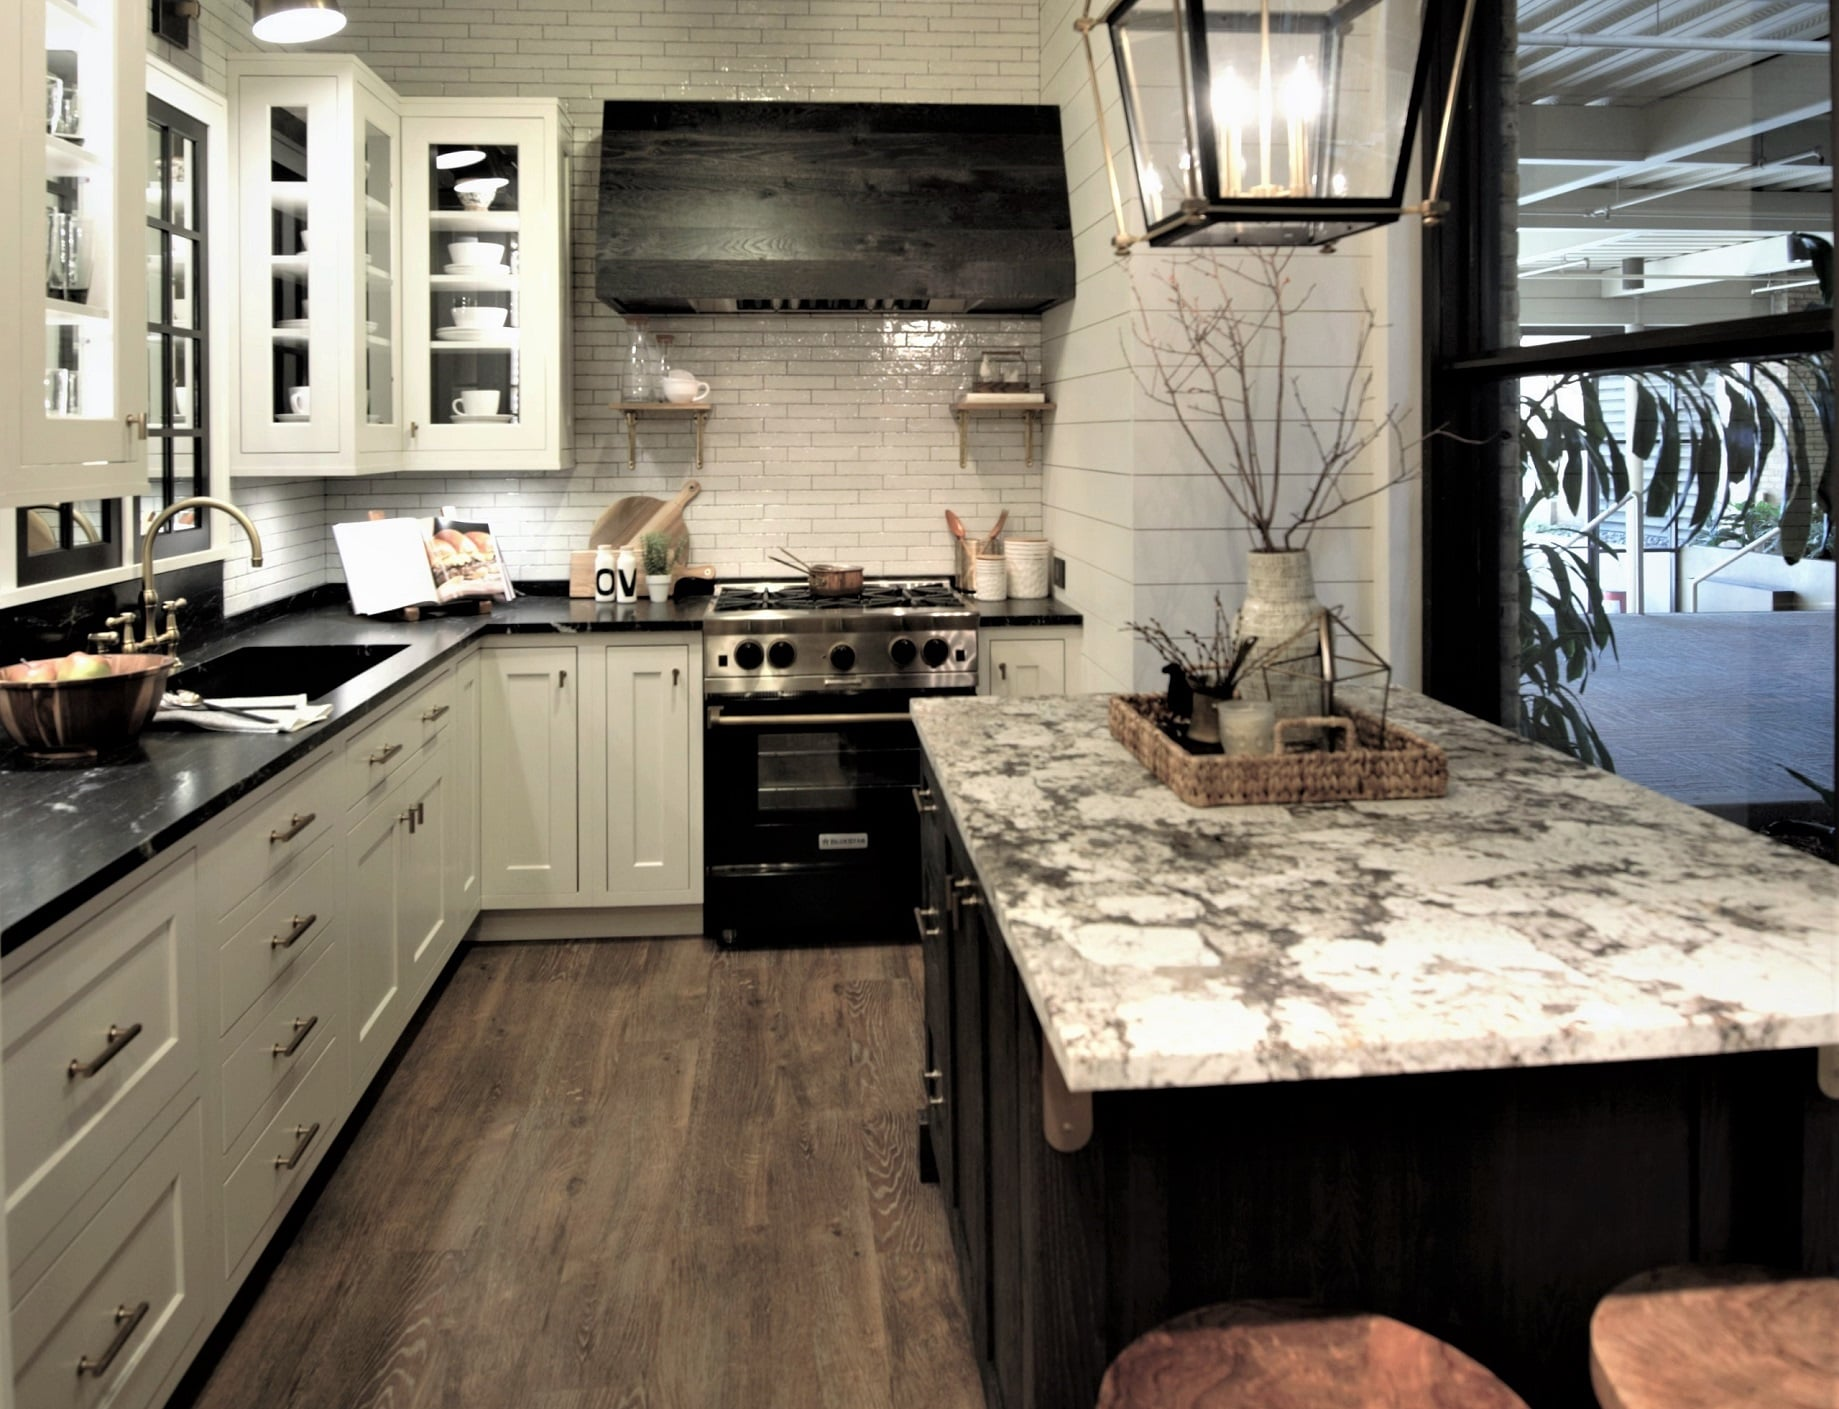 Kitchen Showroom: Modern Farmhouse with a Rustic Twist ... on Rustic Farmhouse Kitchen  id=72086